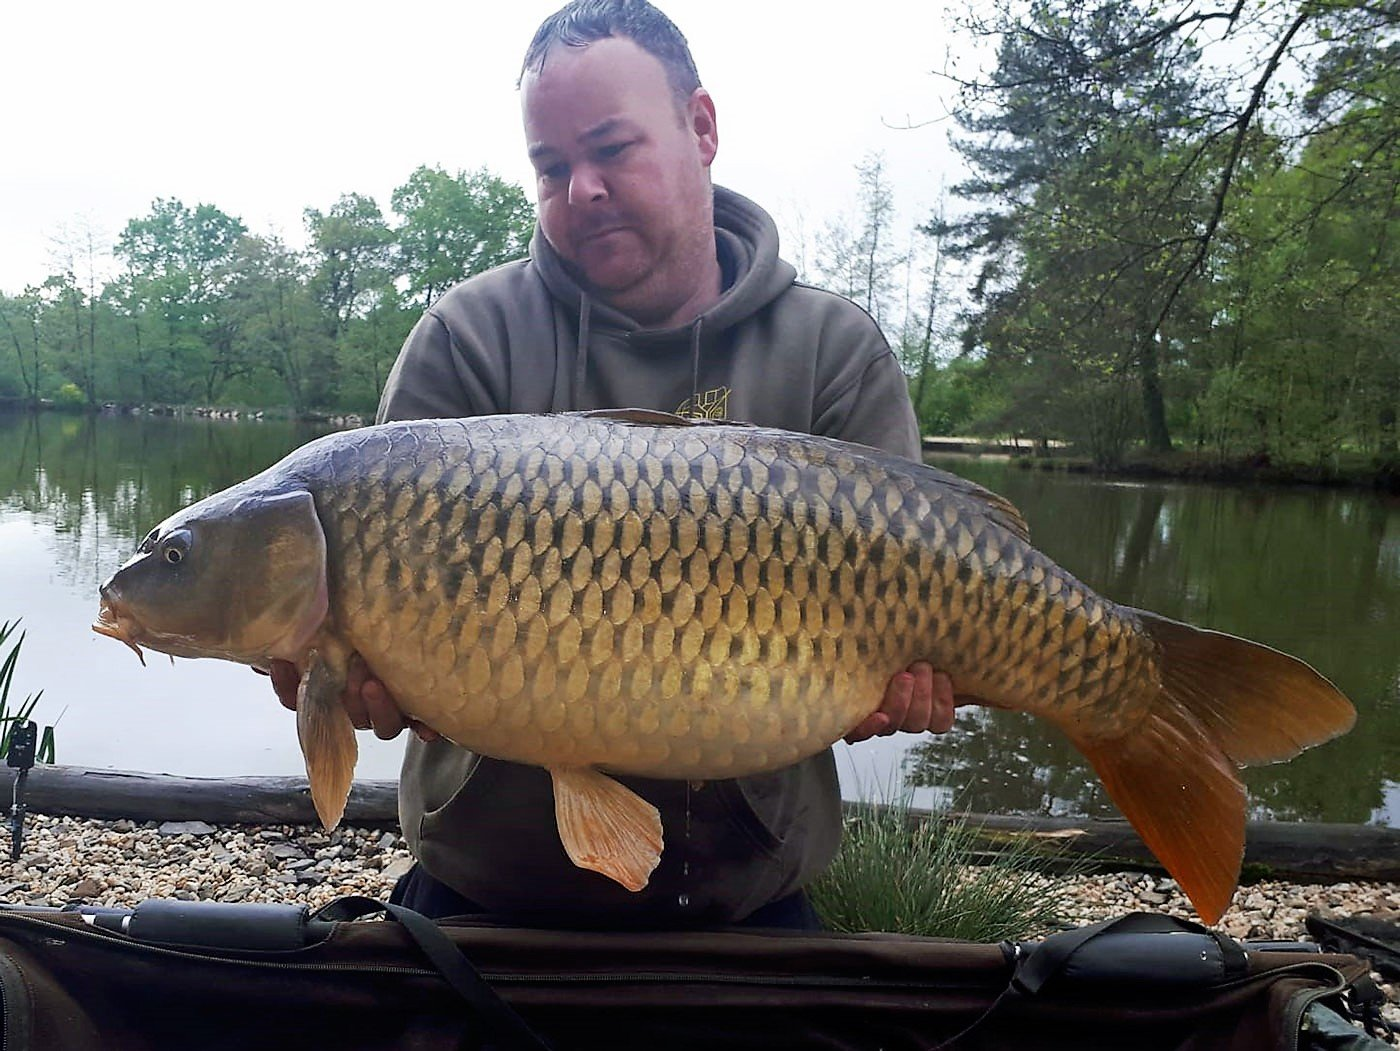 carp angler in france jay with a 30 pound common carp